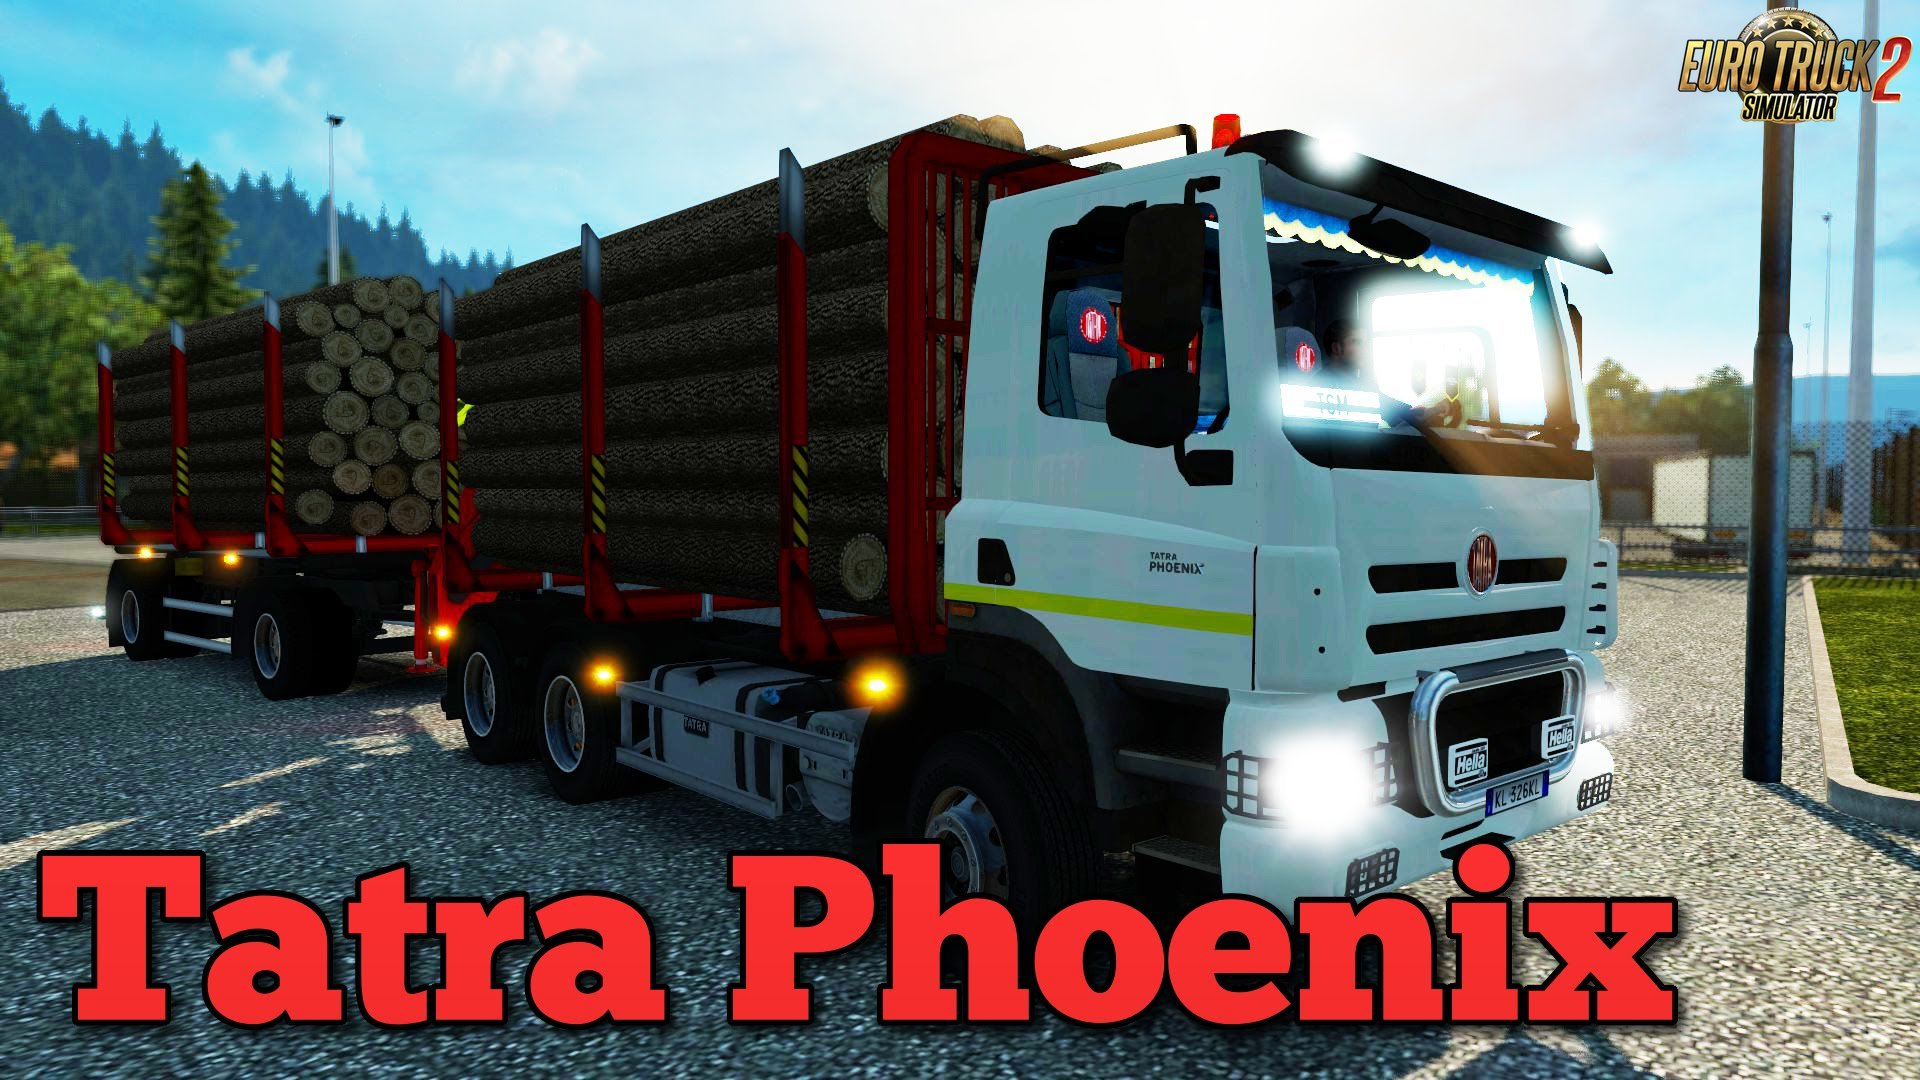 Tatra Phoenix + Interior v5.1 (Fixed Version) (1.26.x)